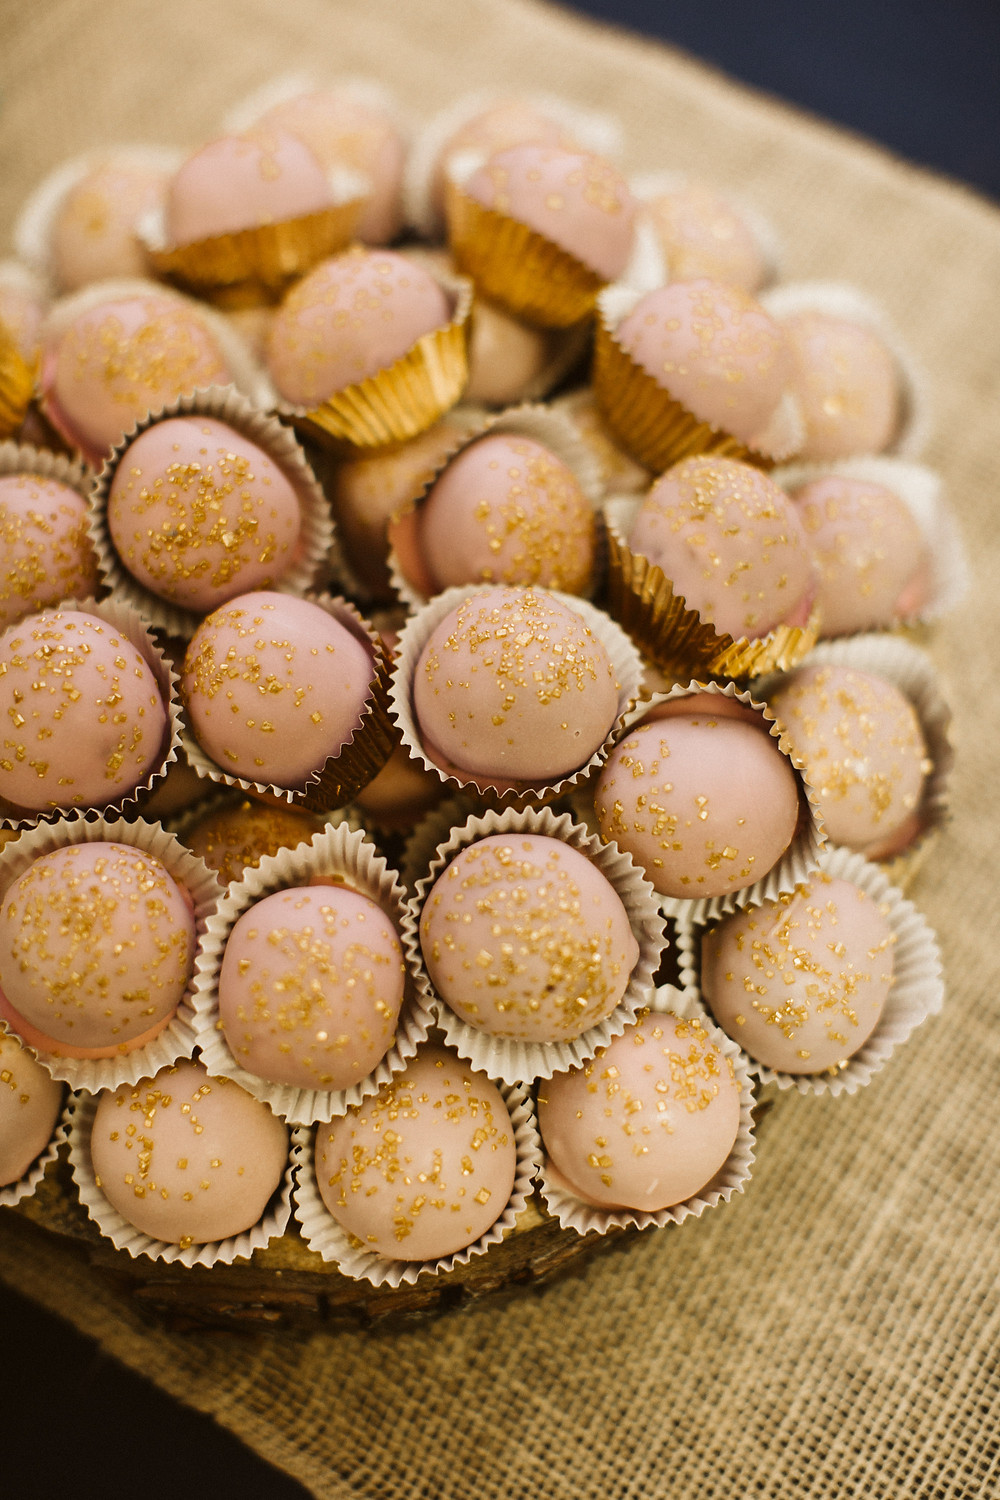 A close up of cake bites dusted in gold powder from Hailey's Sweets and Treats in a Wisconsin wedding